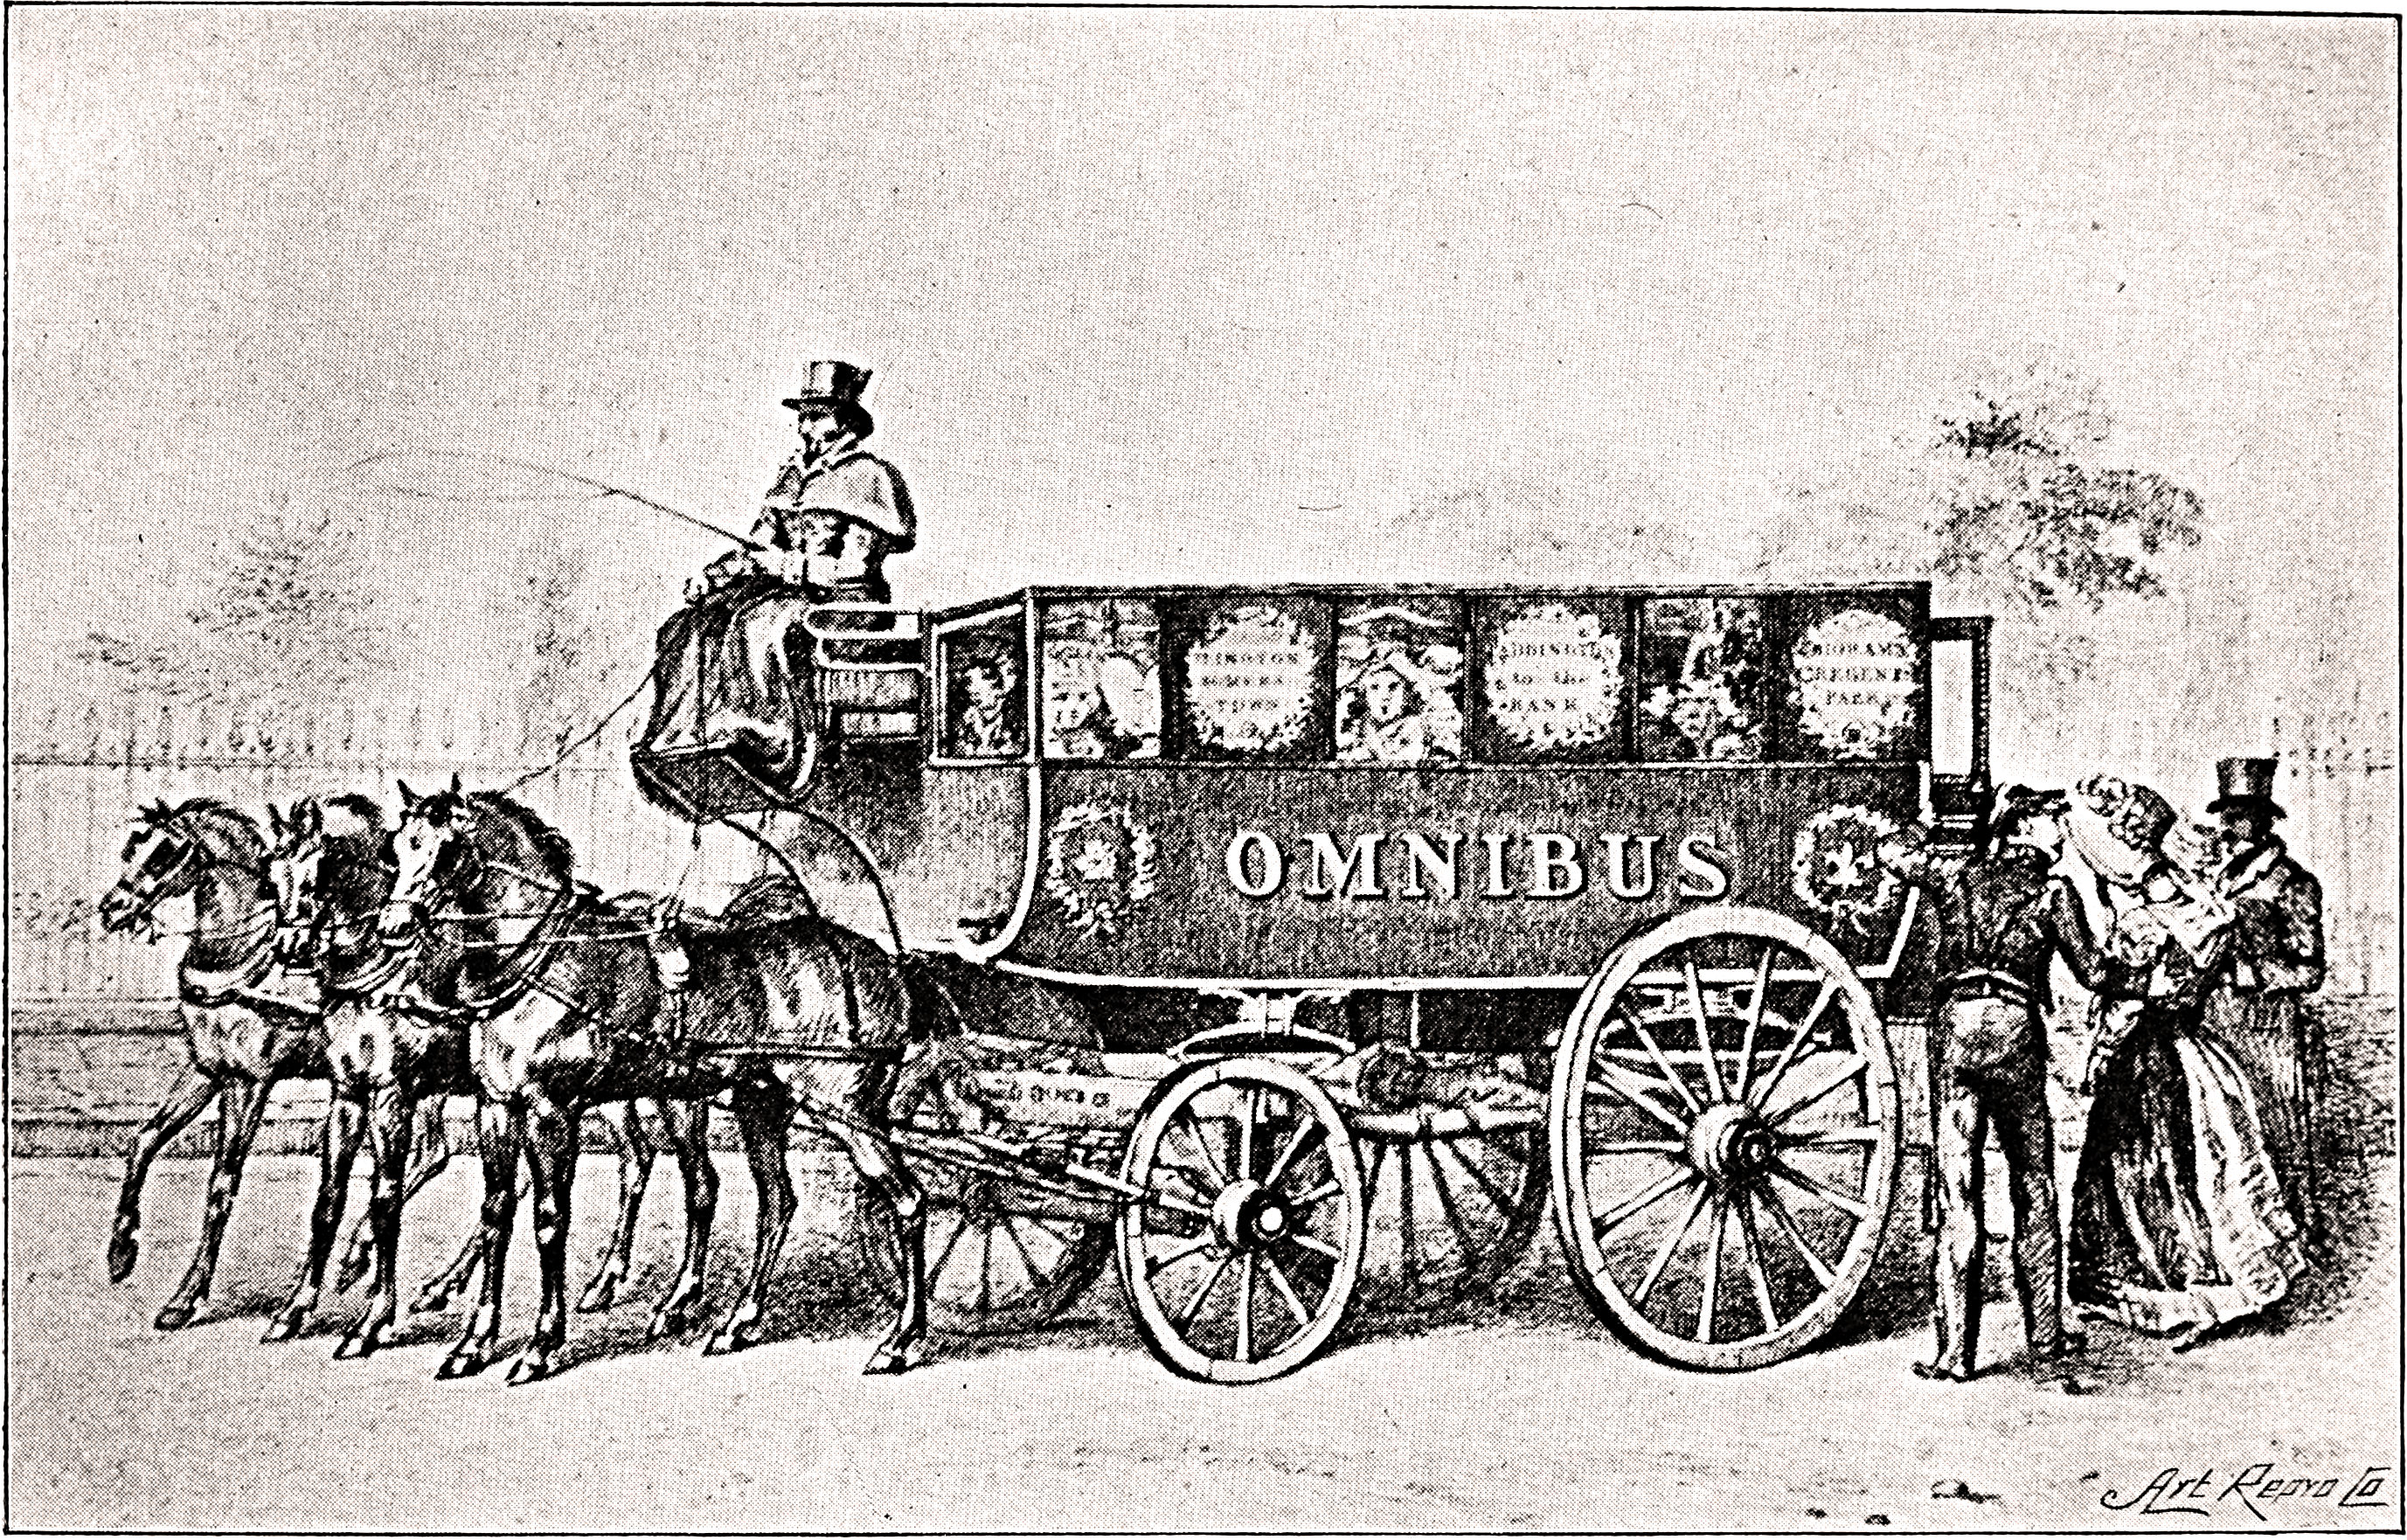 George Shillibeer's first London omnibus, 1829.